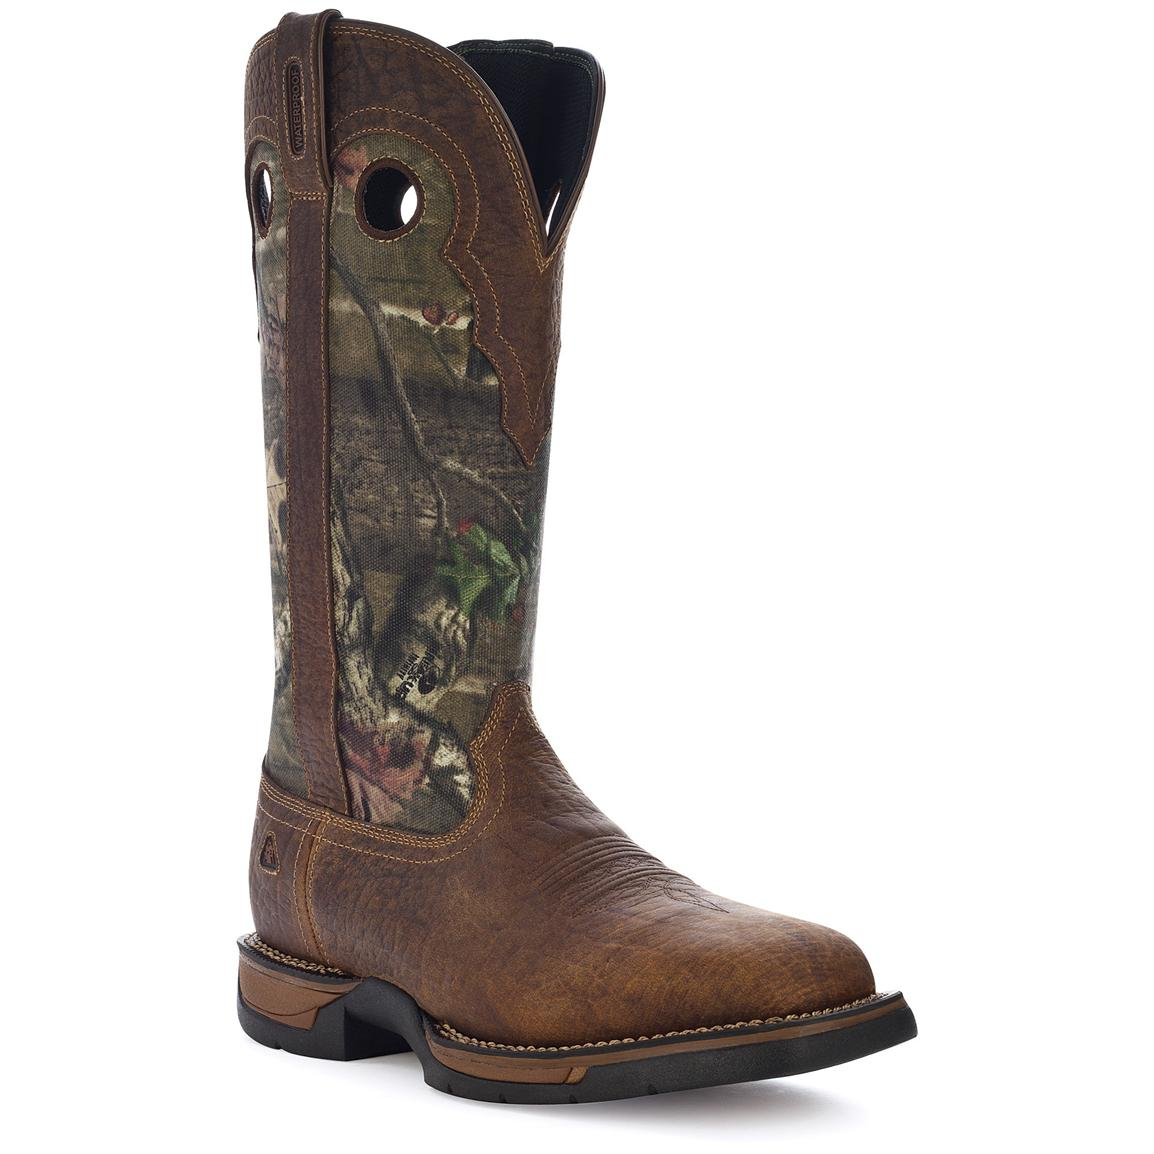 Men's Rocky® 15 inch Long Range Square Toe Camo Snake Boots, Nicotine / Mossy Oak® Break-Up Infinity®